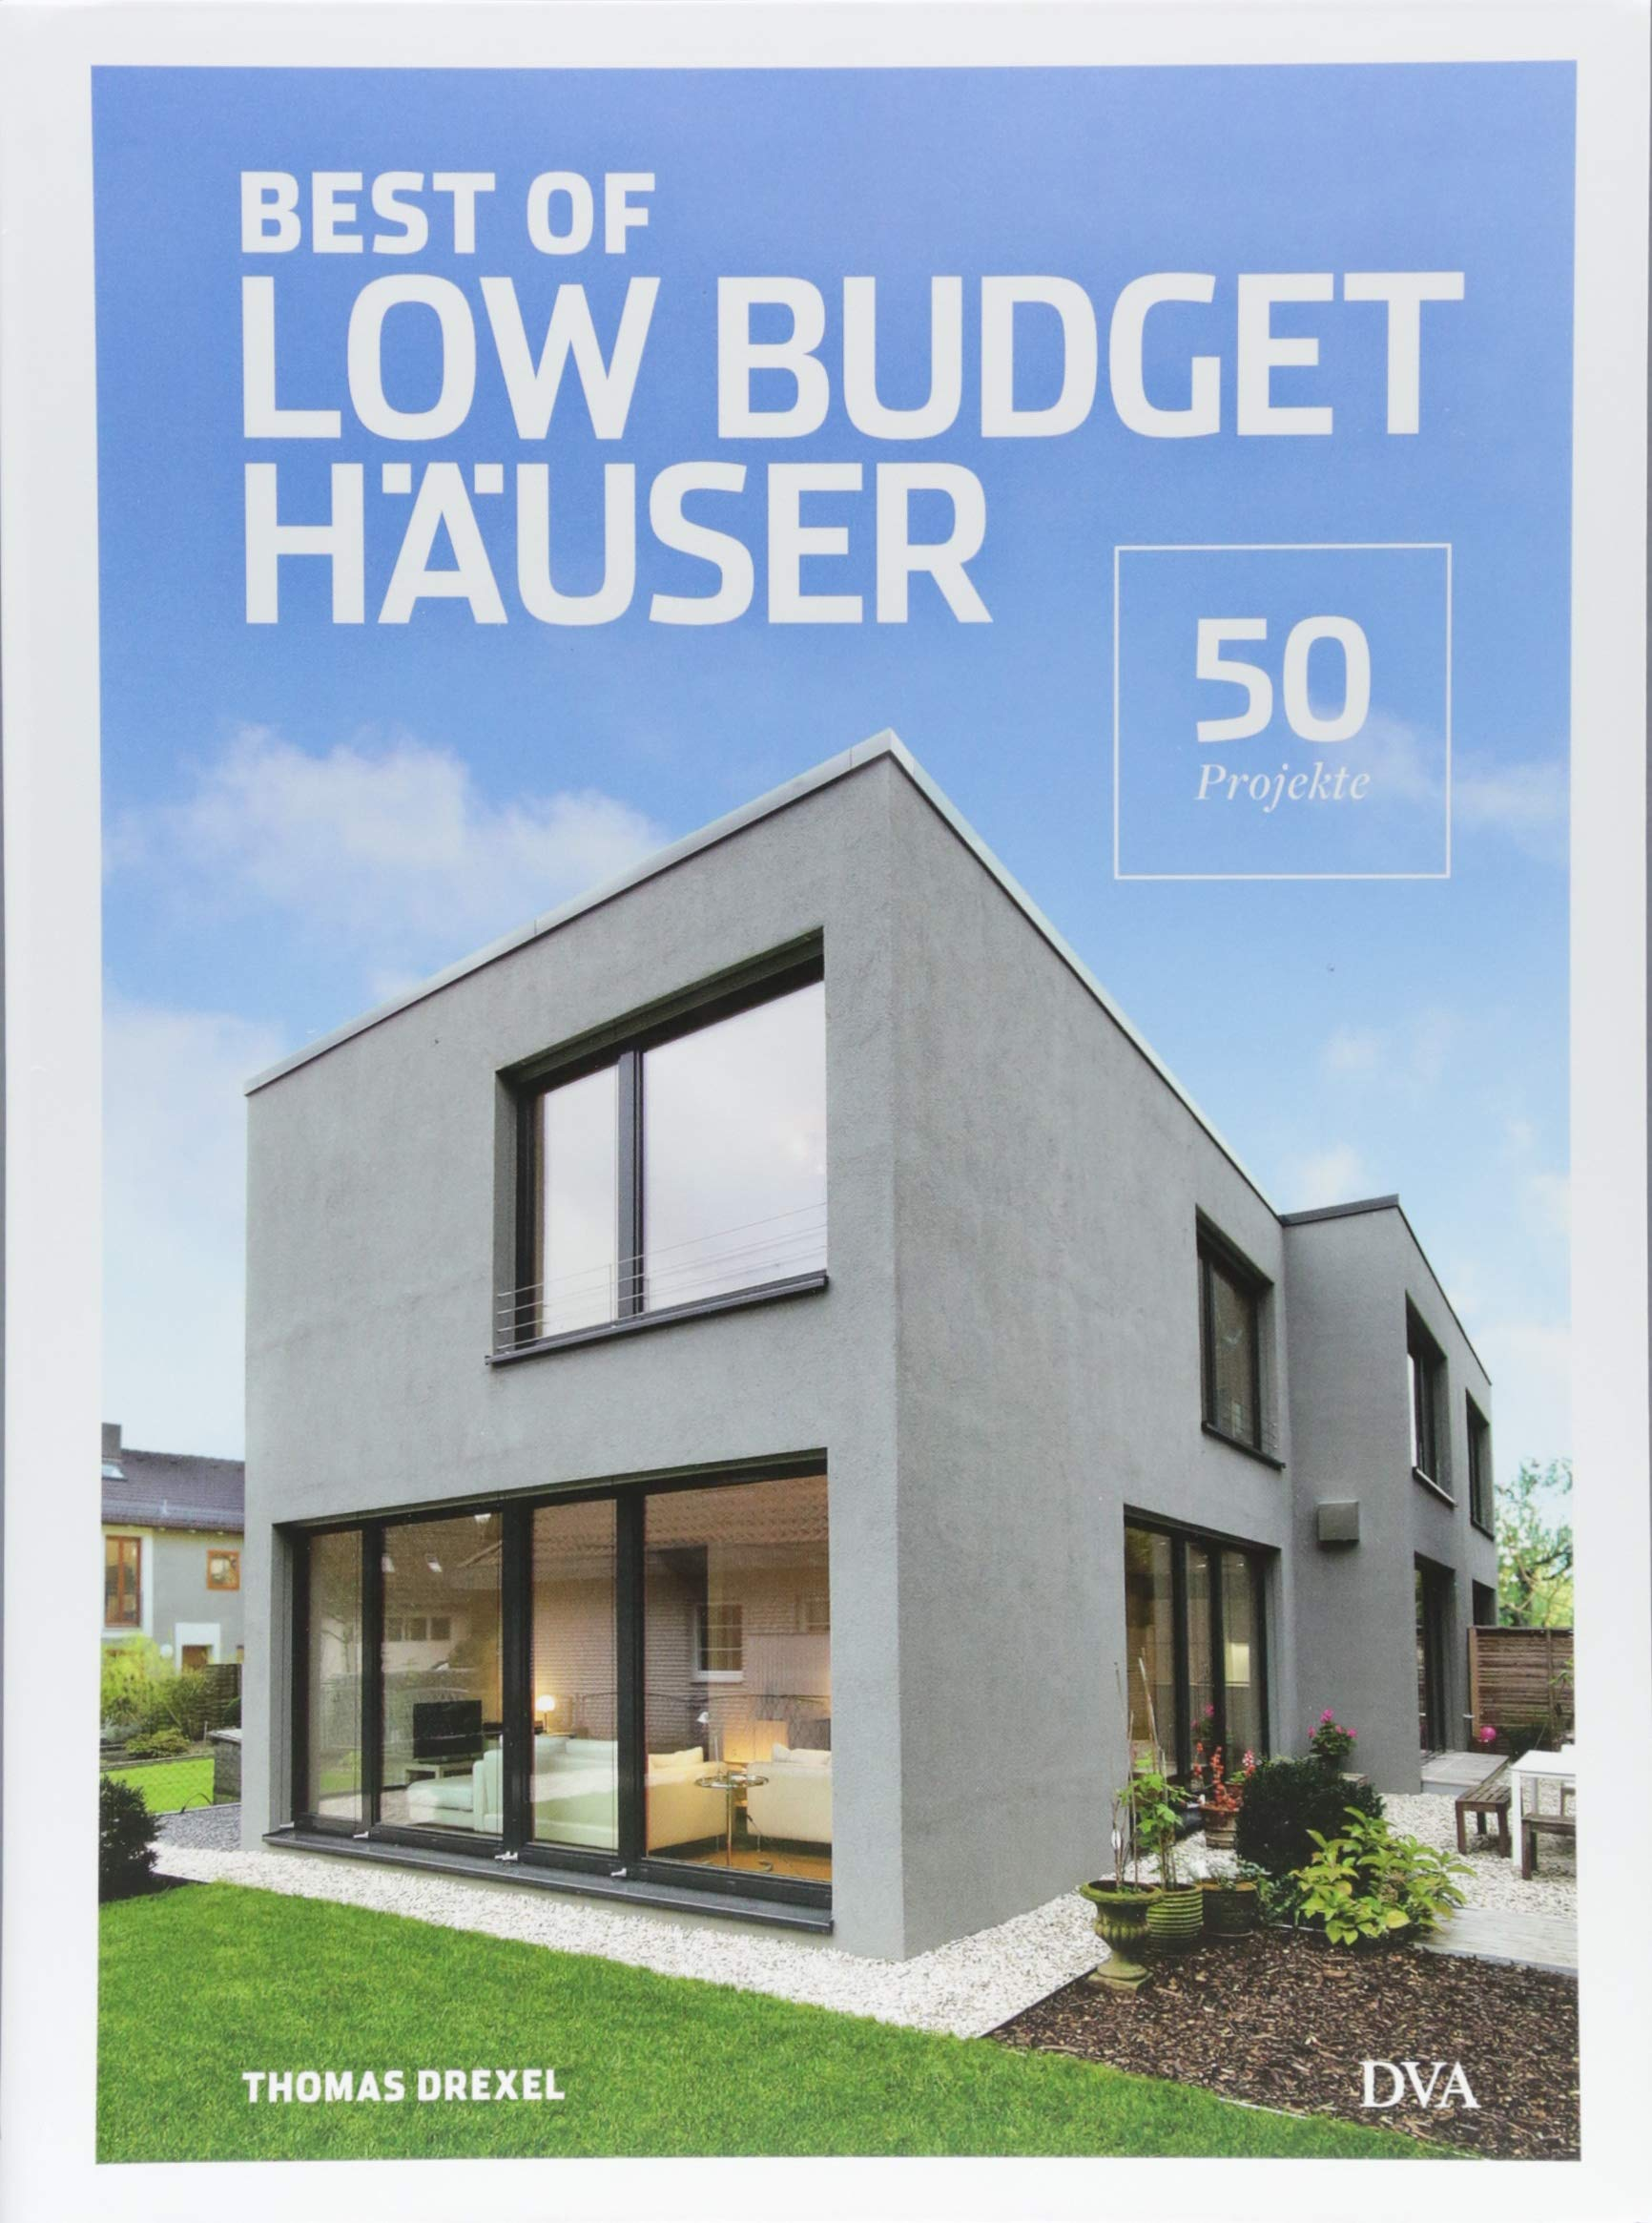 Best of Low Budget Häuser: 50 Projekte Gebundenes Buch – 27. August 2018 Thomas Drexel Deutsche Verlags-Anstalt 3421040974 Heimwerken / Do it yourself